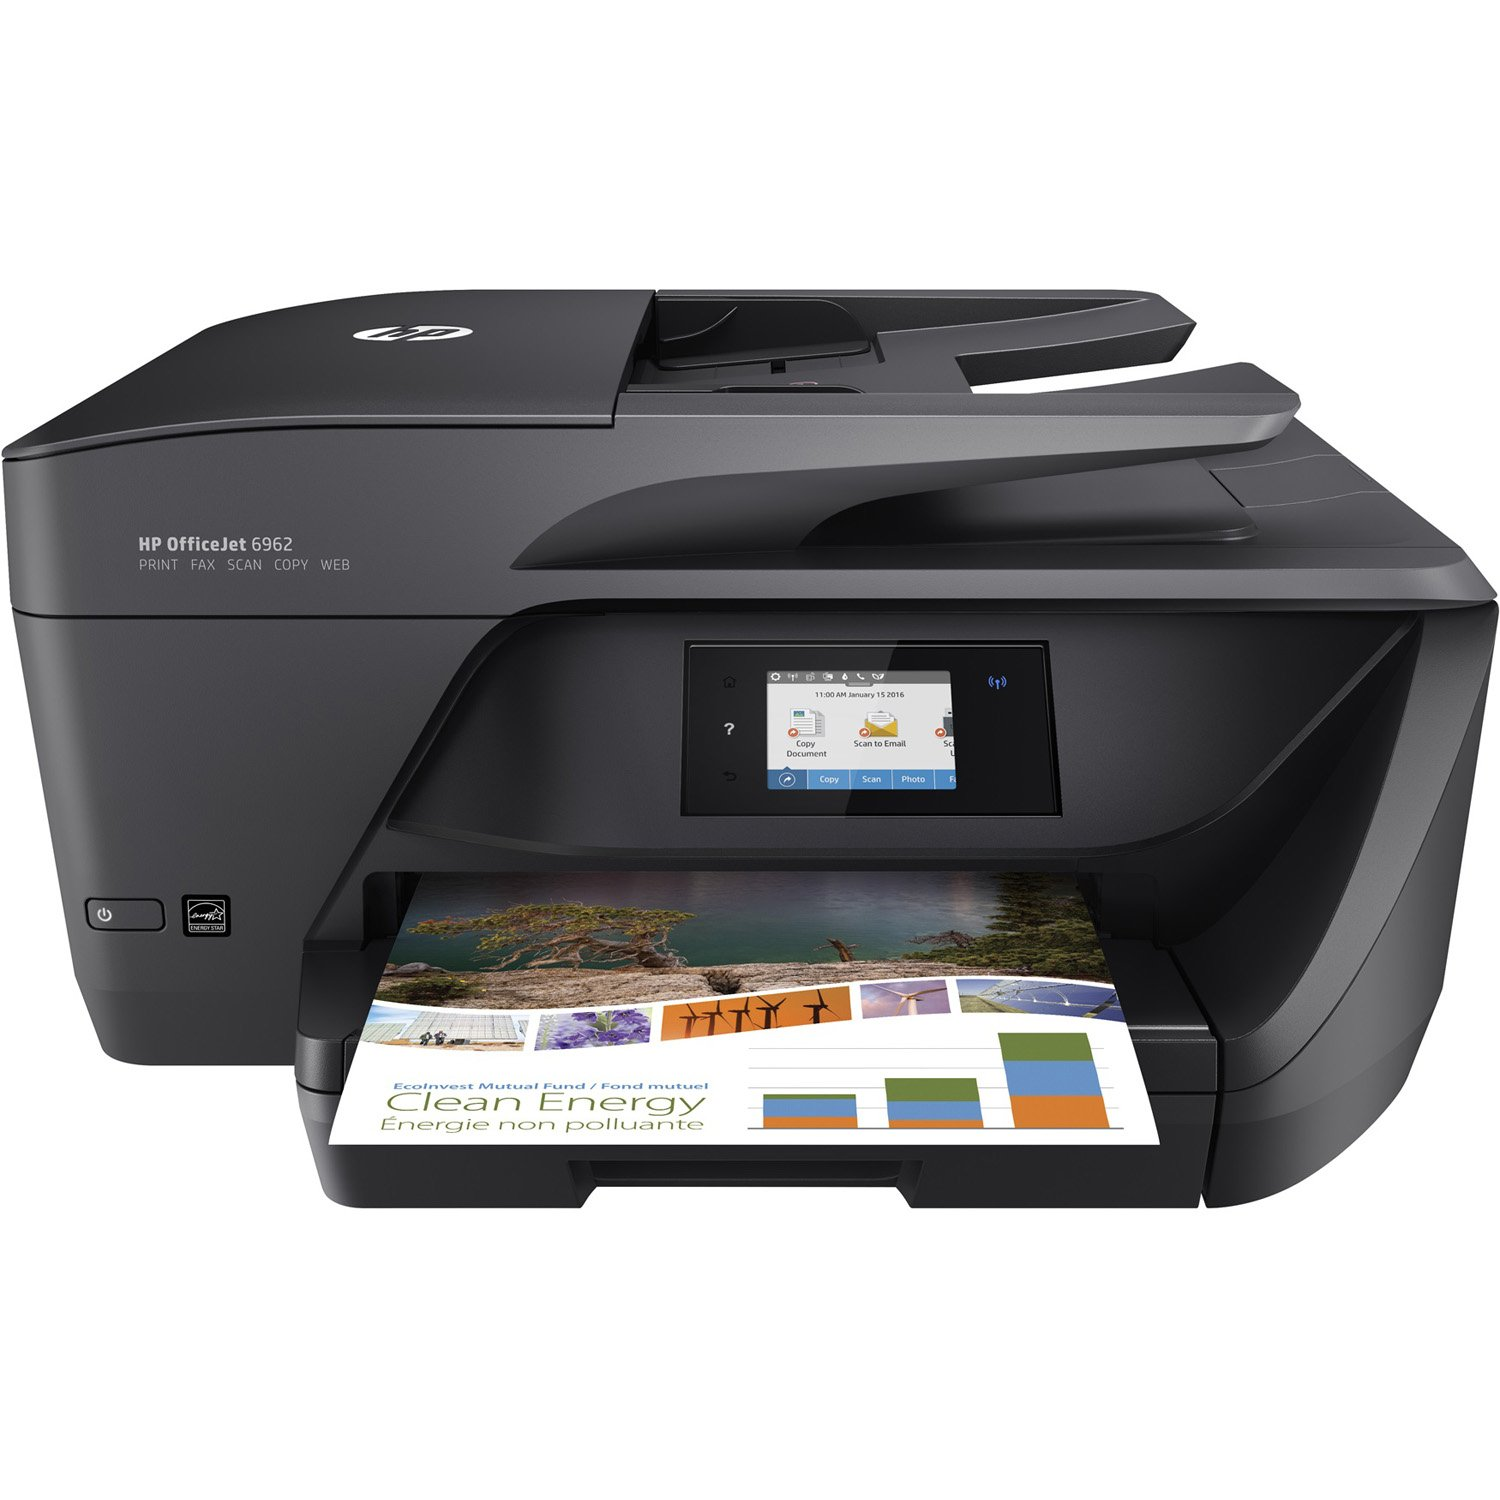 HP OfficeJet 6962 Wireless Colour Photo Printer with Scanner, Copier and Fax, Black (T0G26A#1HA) HEWMJ HP6962